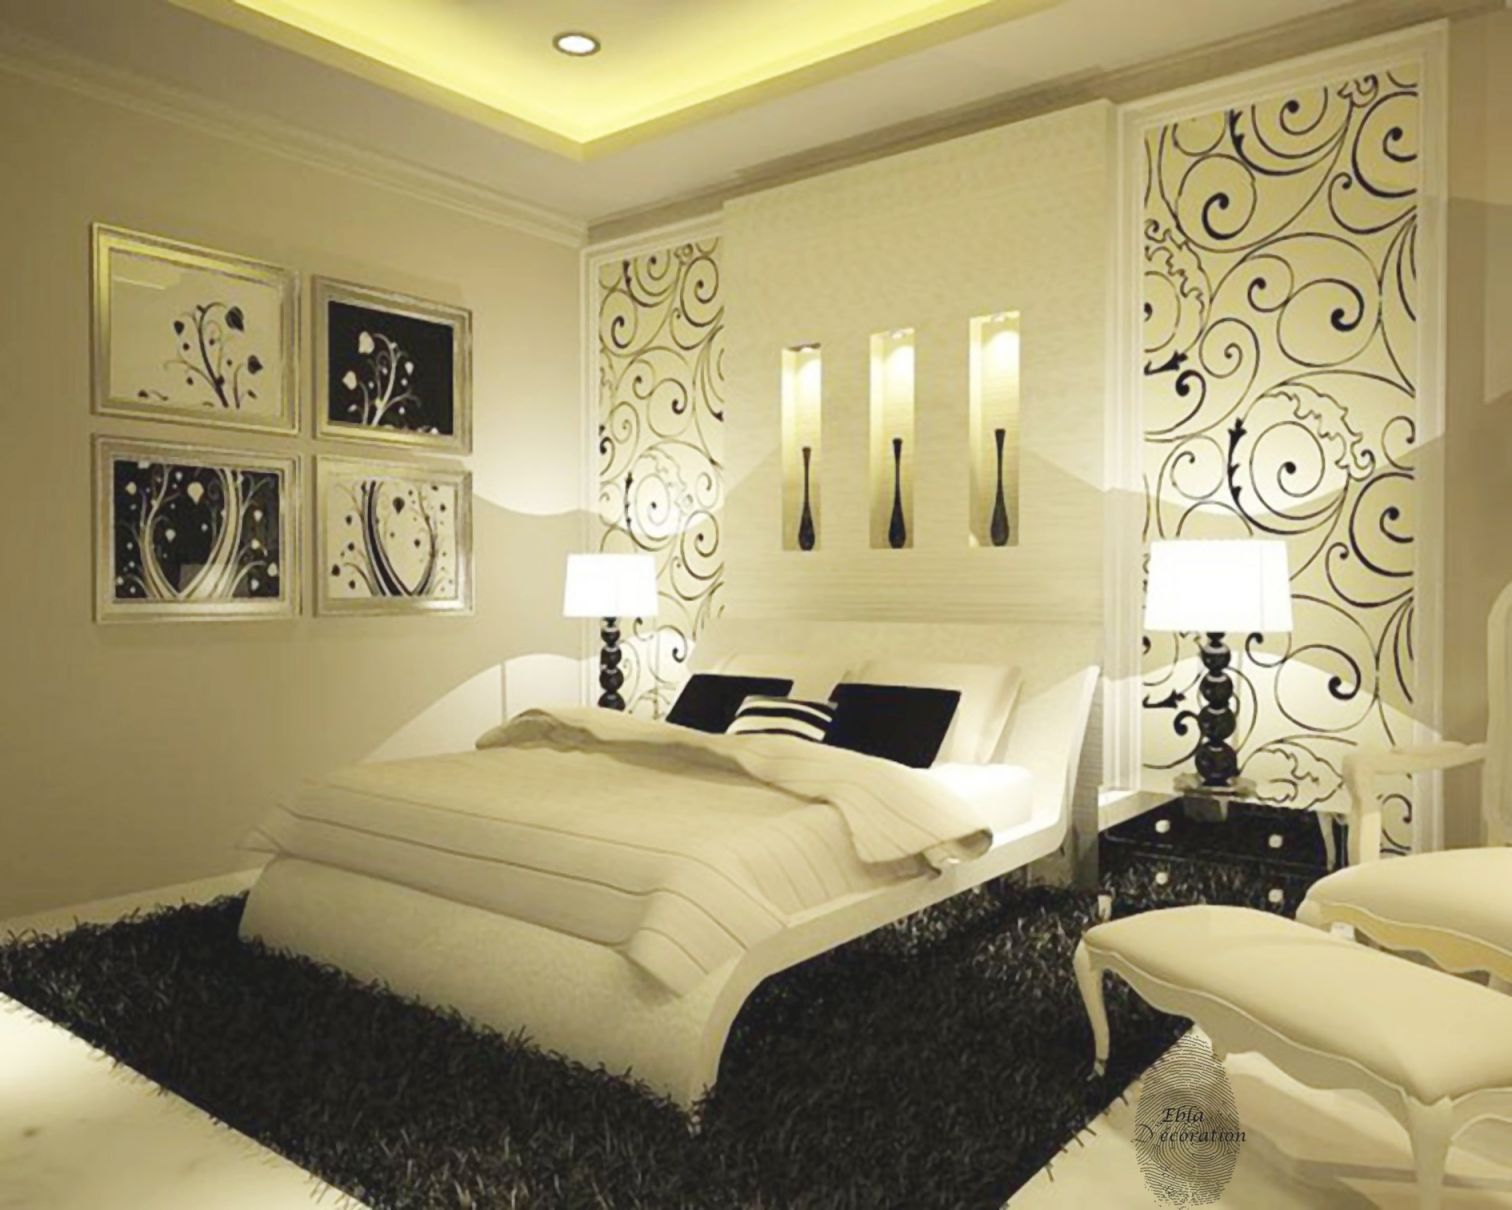 Enchanting Master Bedrooms Design Ideas That Everyone Can intended for Home Decor Ideas For Master Bedroom